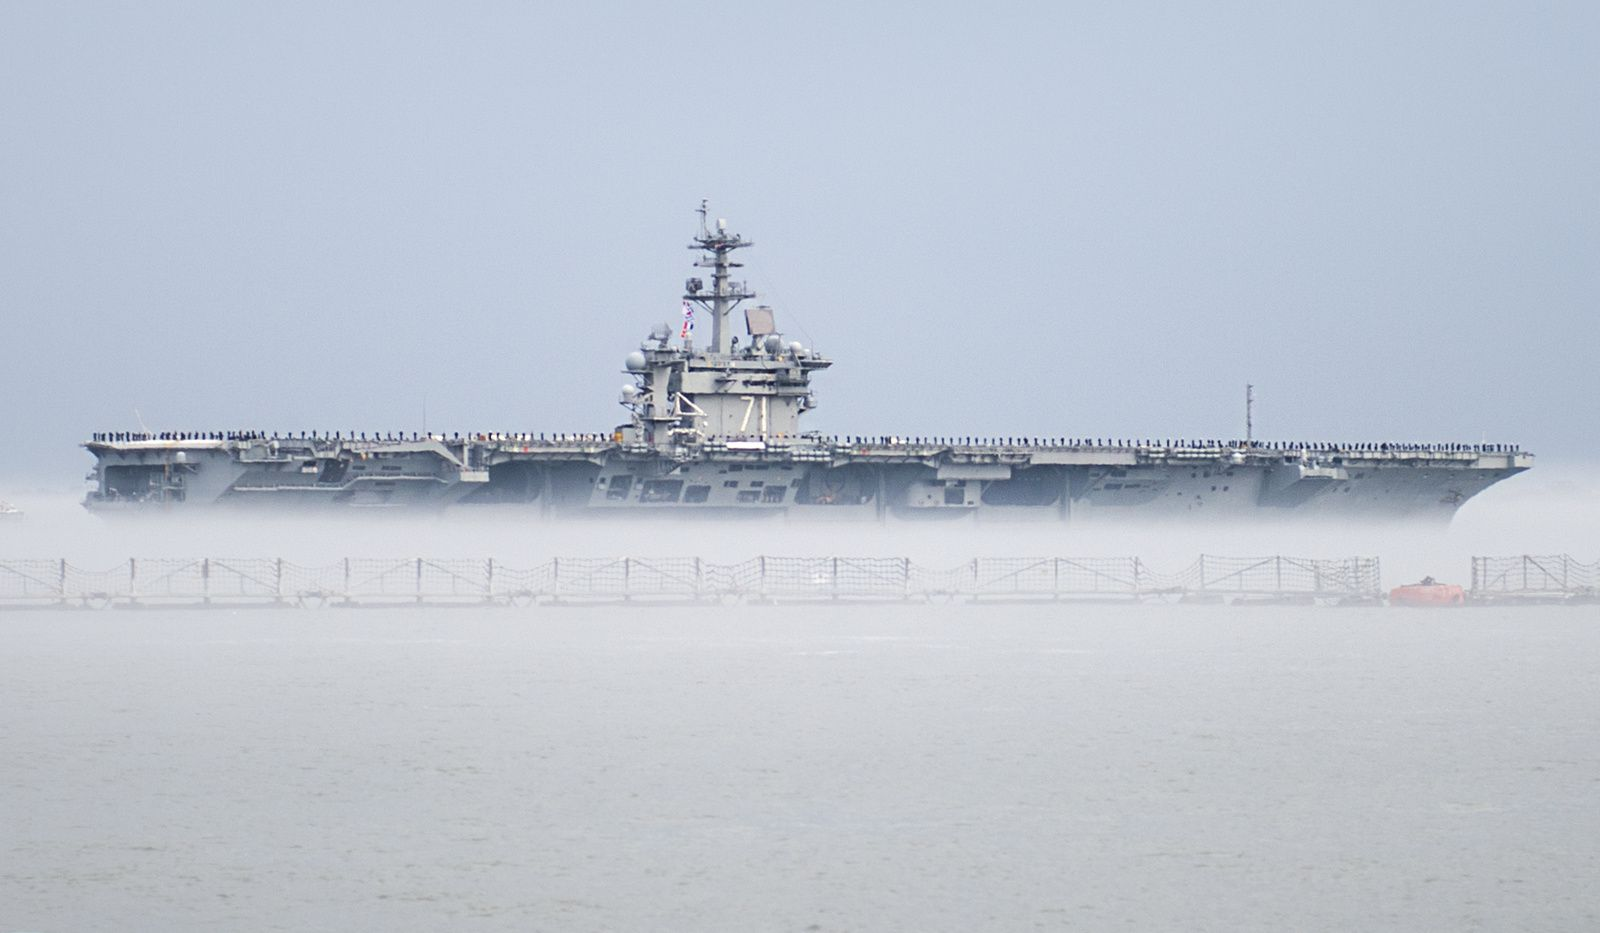 The aircraft carrier USS Theodore Roosevelt (CVN 71) departs Naval Station Norfolk for a scheduled deployment